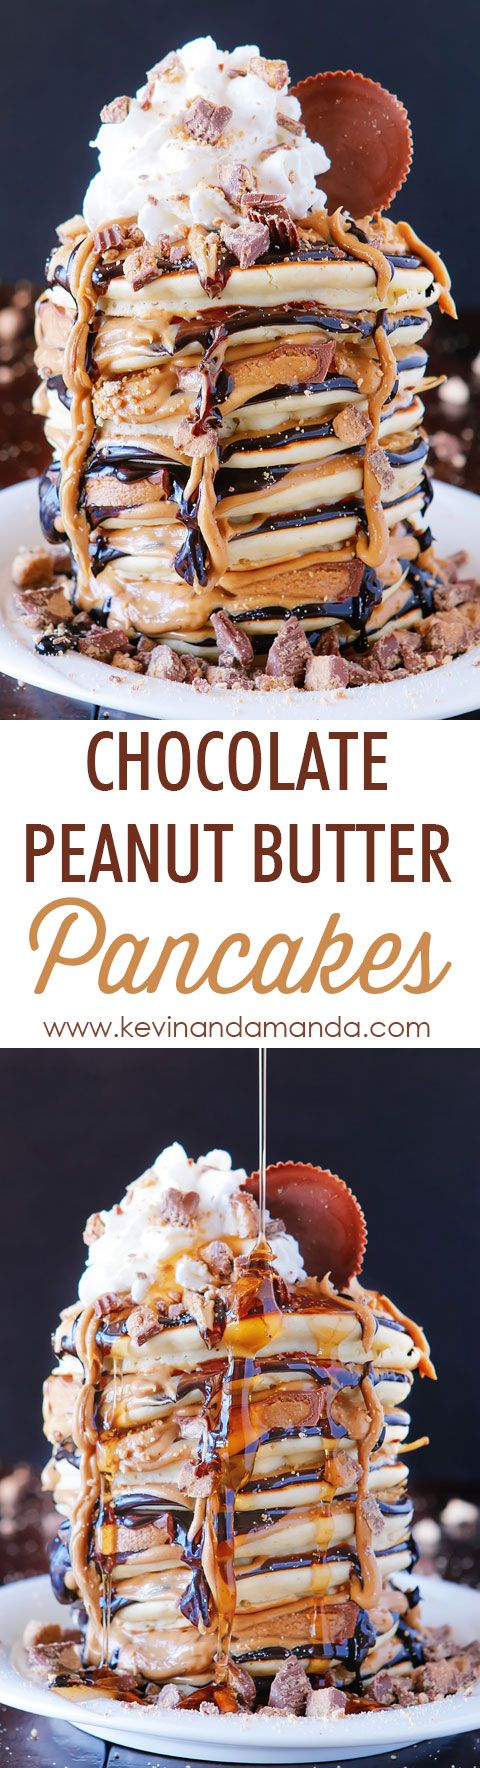 Chocolate Peanut Butter Cup Pancakes Best Pancakes Recipe Recipe Peanut Butter Pancakes Yummy Breakfast Food